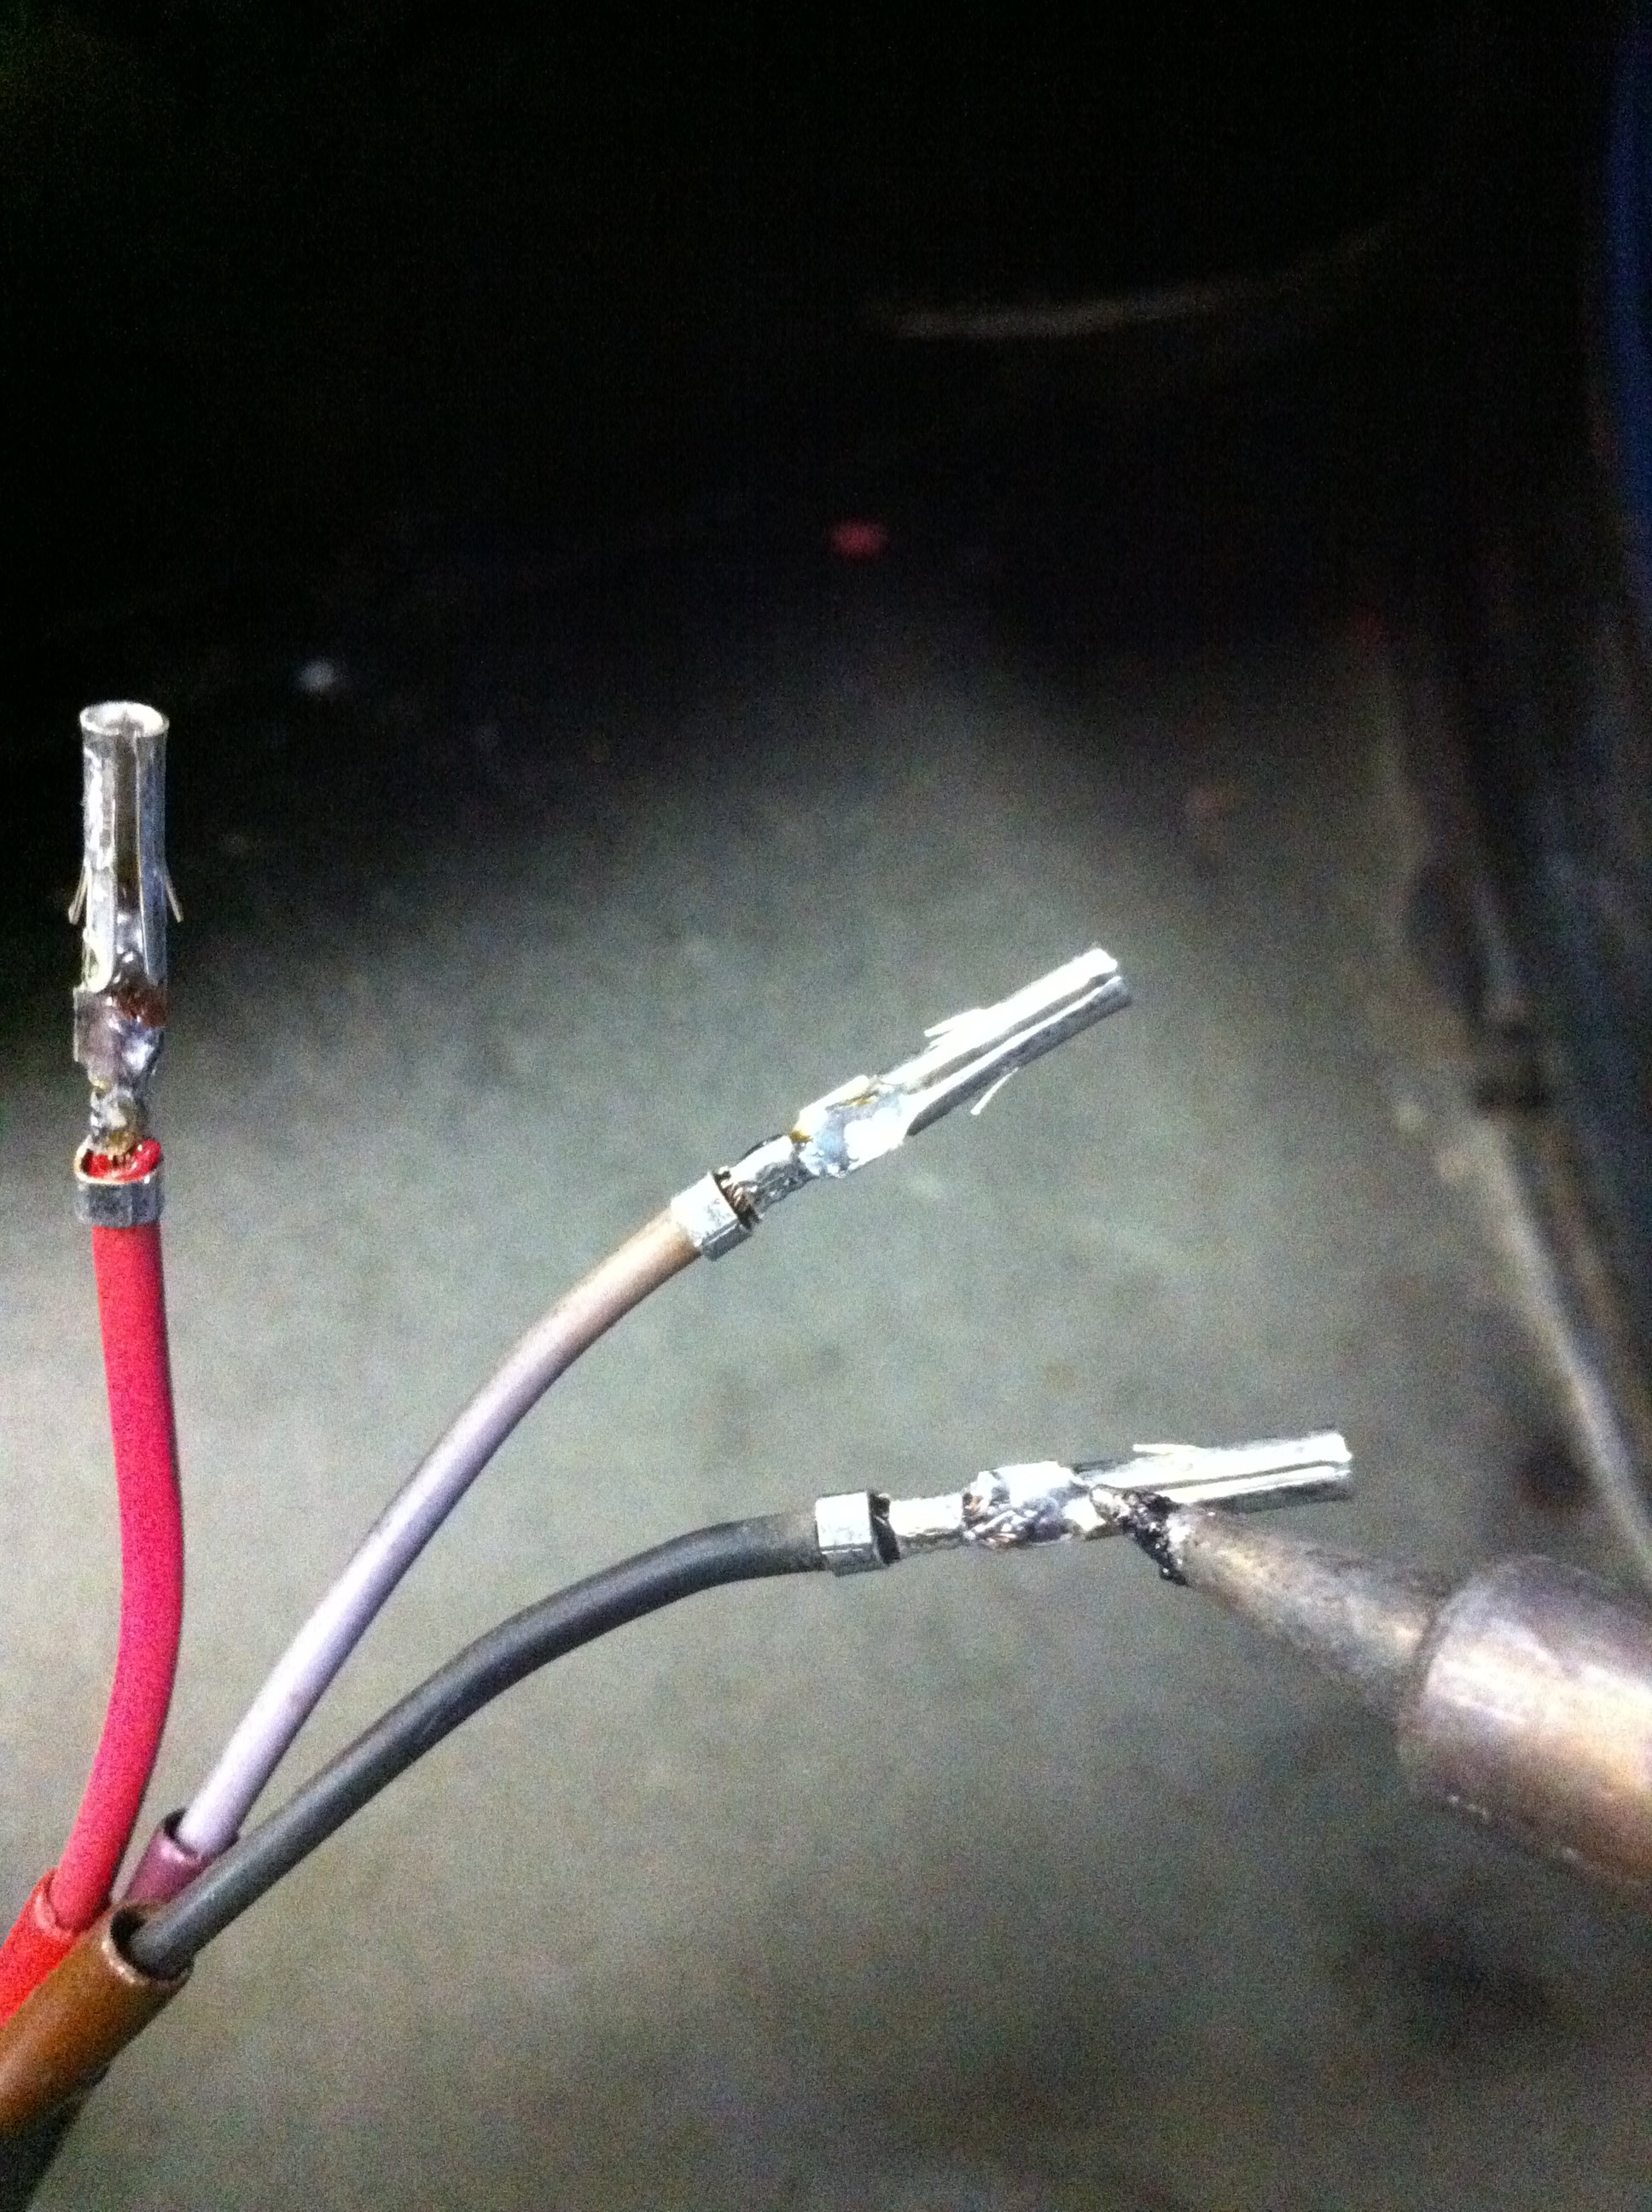 Soldering the connector